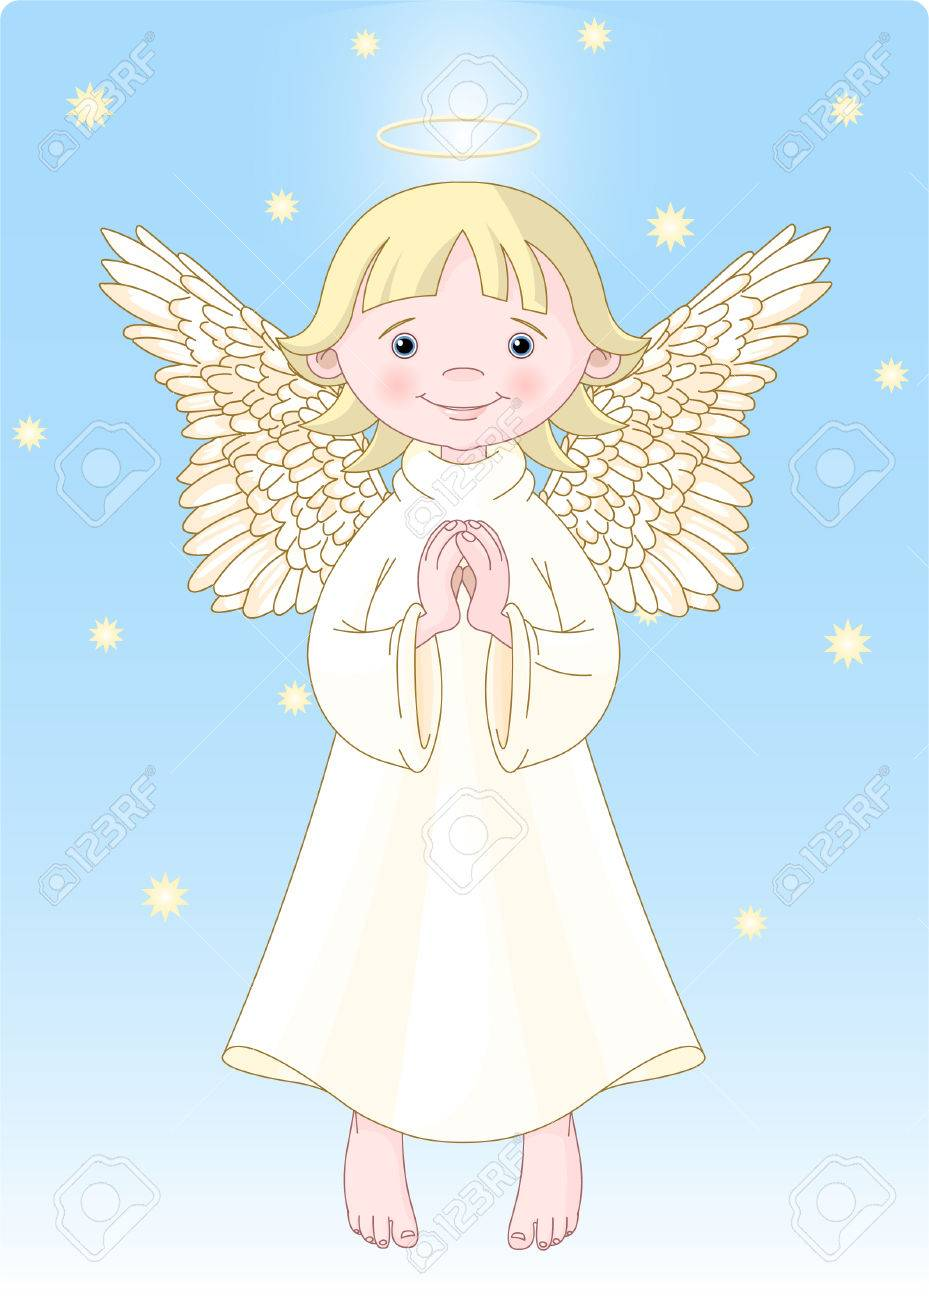 Cute Praying Angel in White Gown. All levels are separate. Stock Vector - 4772437